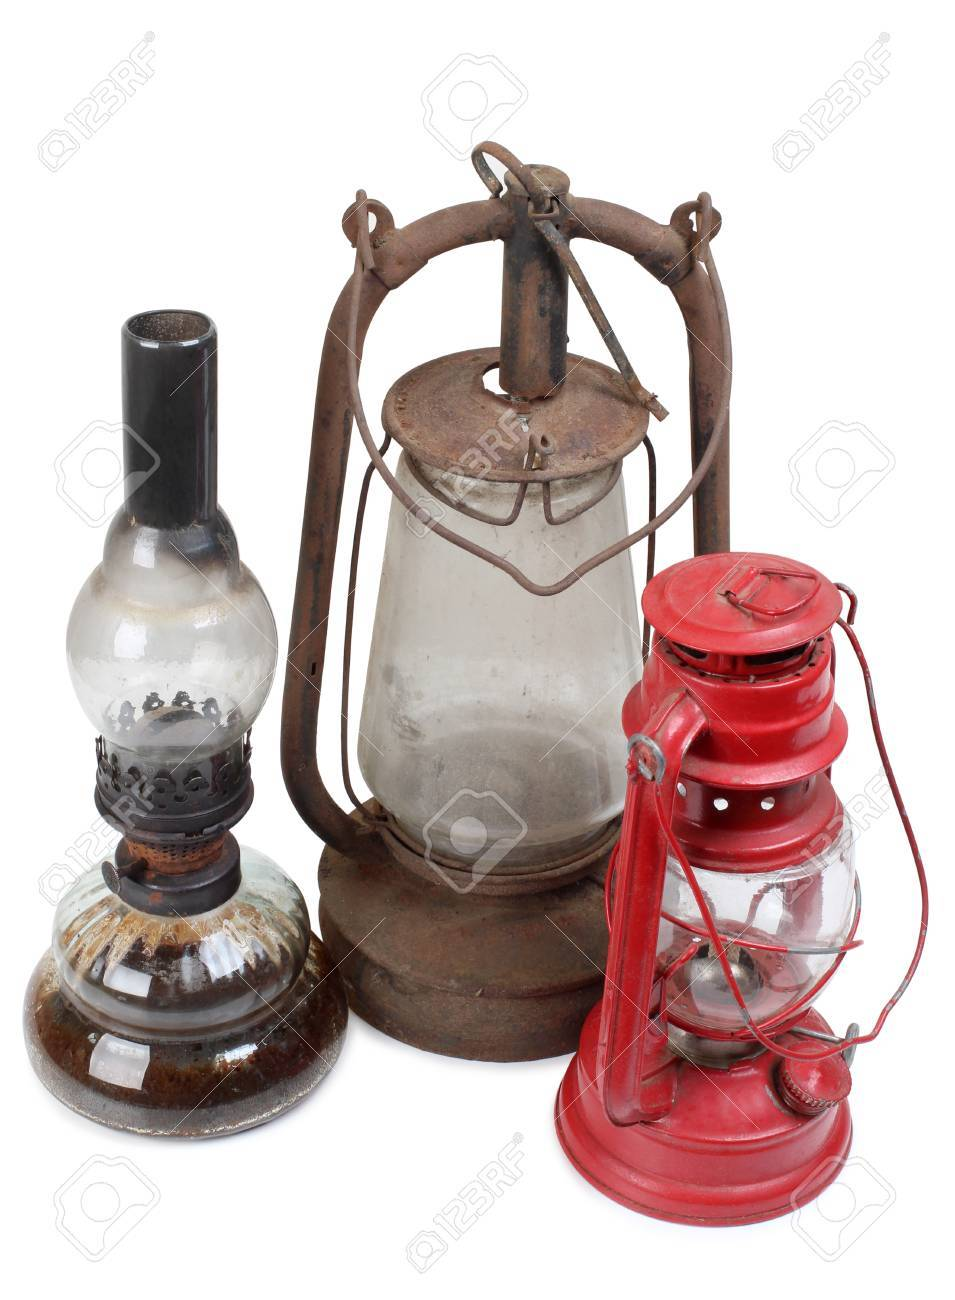 Picture of: Old Kerosene Lamps On White Background Stock Photo Picture And Royalty Free Image Image 69972721